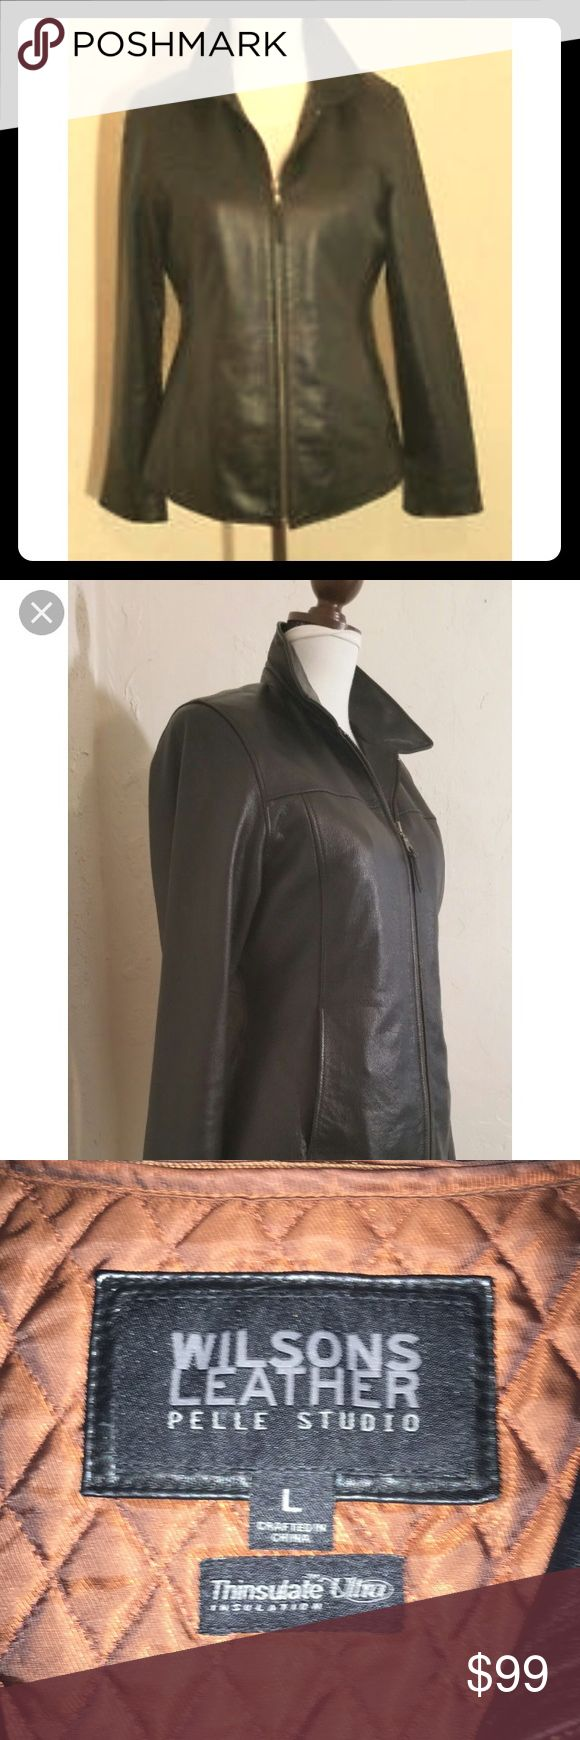 SAle Wilson's Leather Jacket with Removable Lining Never worn women's Wilsons Leather jacket with removable thinsulate lining that can be zipped in or out for extra warmth! Size large!! Wilsons Leather Jackets & Coats Blazers